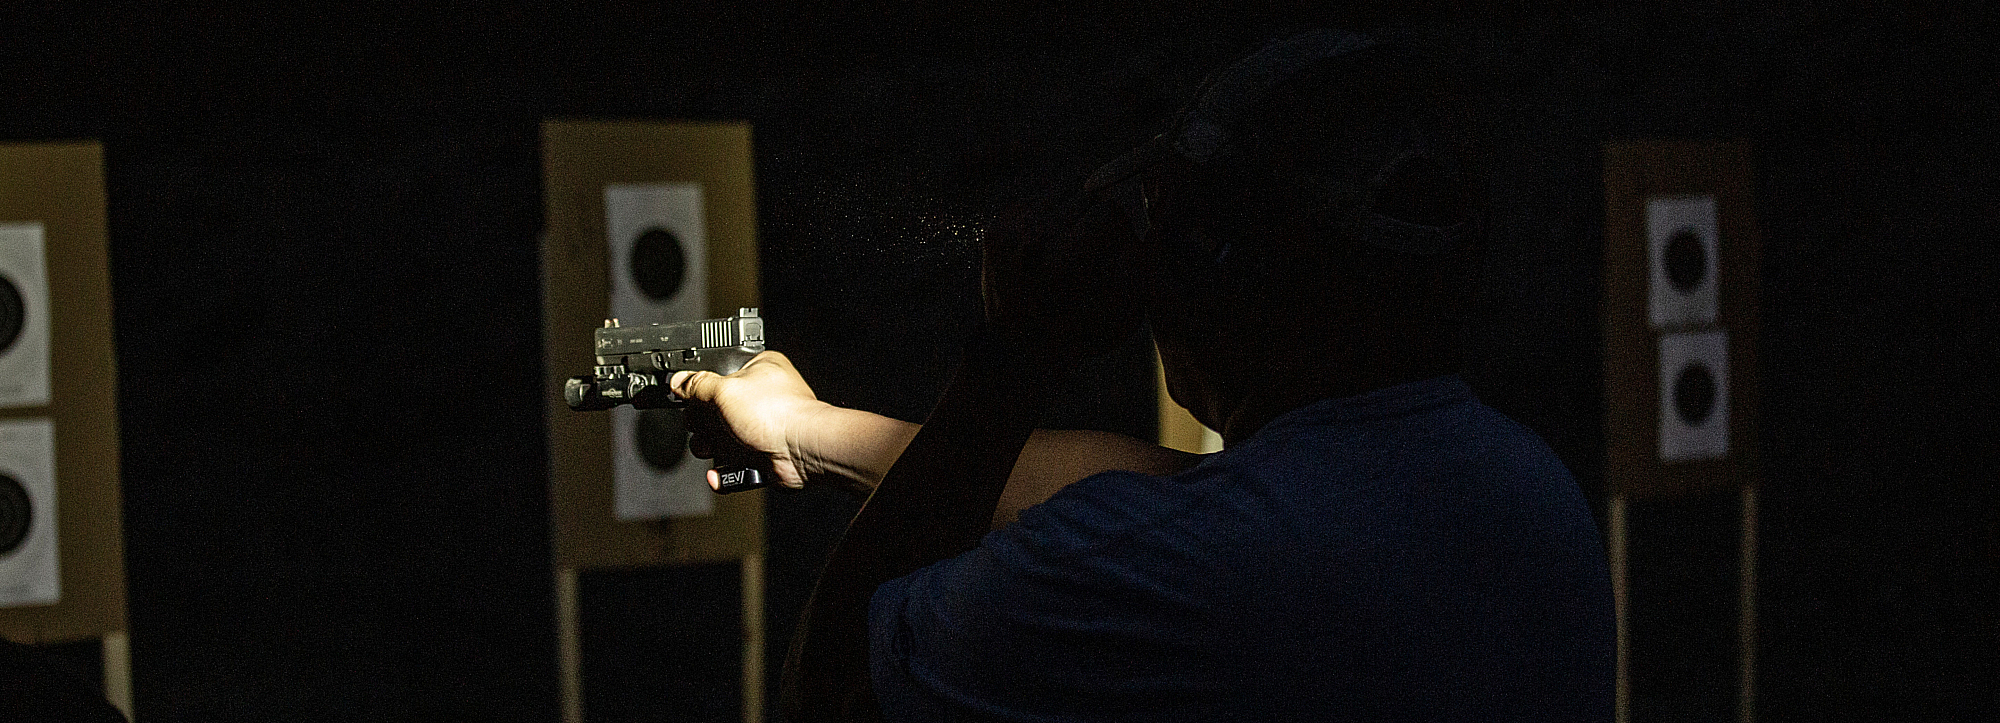 SureFire Low Light Handgun Training With Bill BlowersTap-Rack Tactical explains the finer points of low light shooting